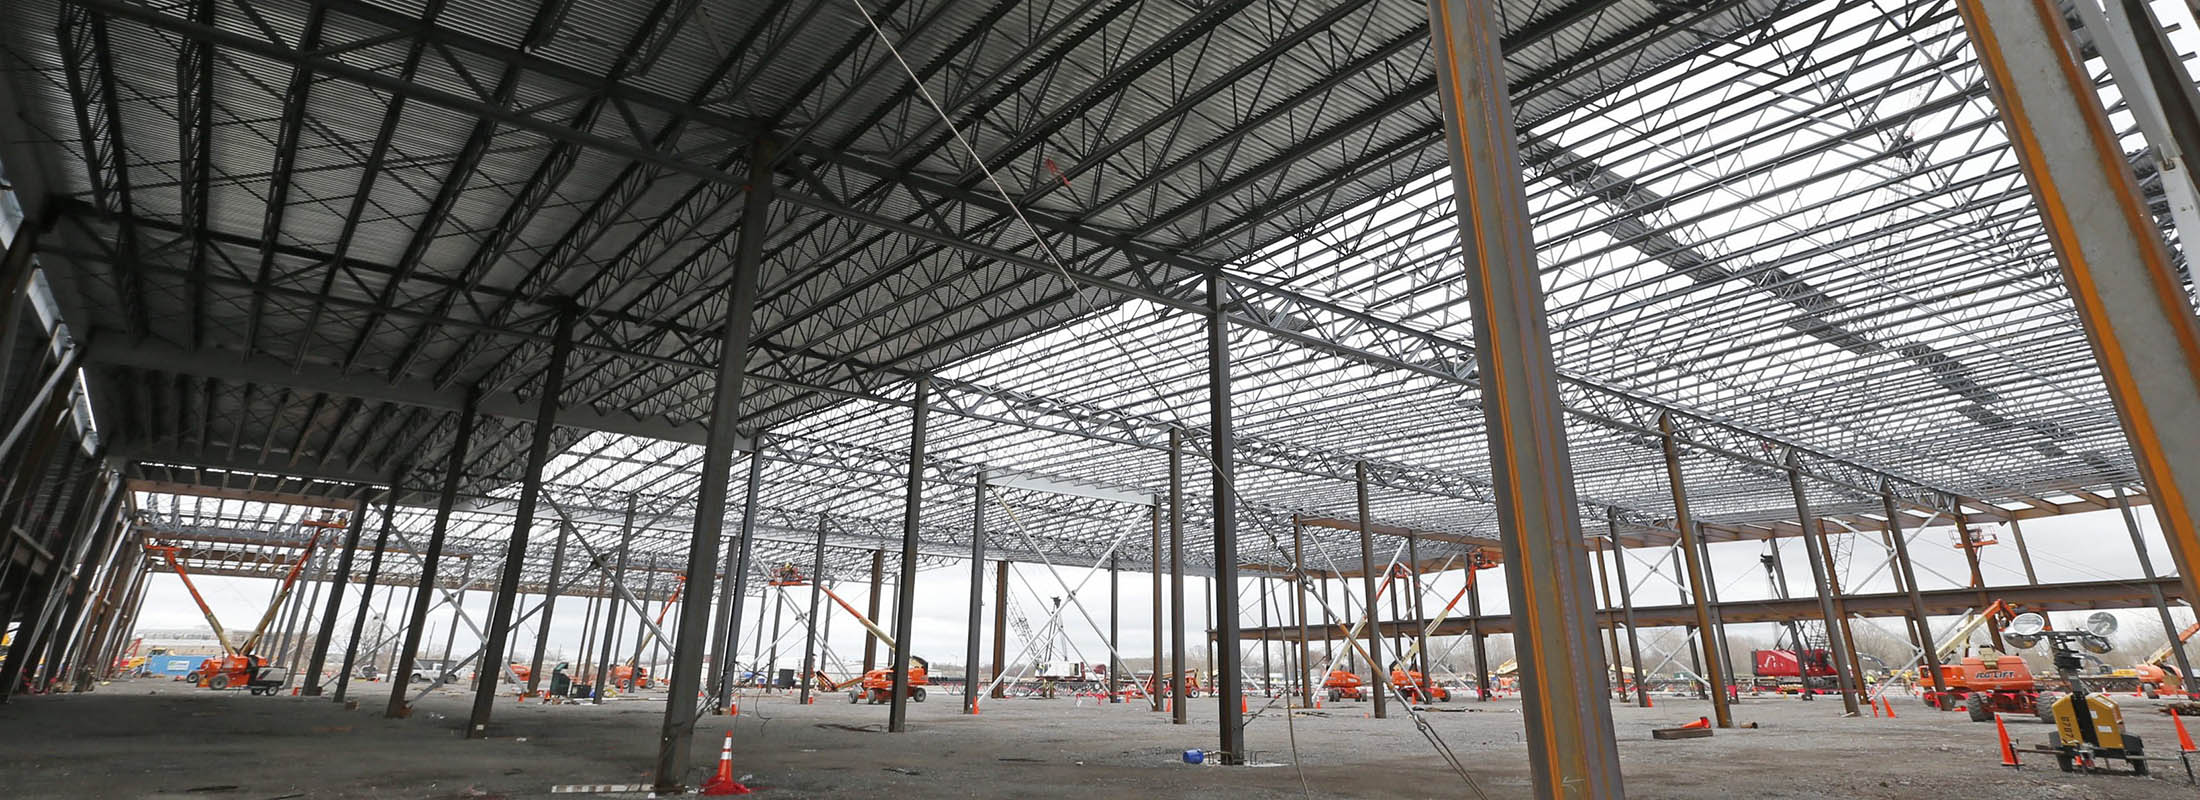 At issue in the trial will be whether laws were broken in the way Louis Ciminelli's firm, LPCiminelli, and a Syracuse company were selected to build some of Cuomo's signature upstate economic development projects, including the state's Buffalo Billion solar plant project at RiverBend.  (Robert Kirkham/News file photo)